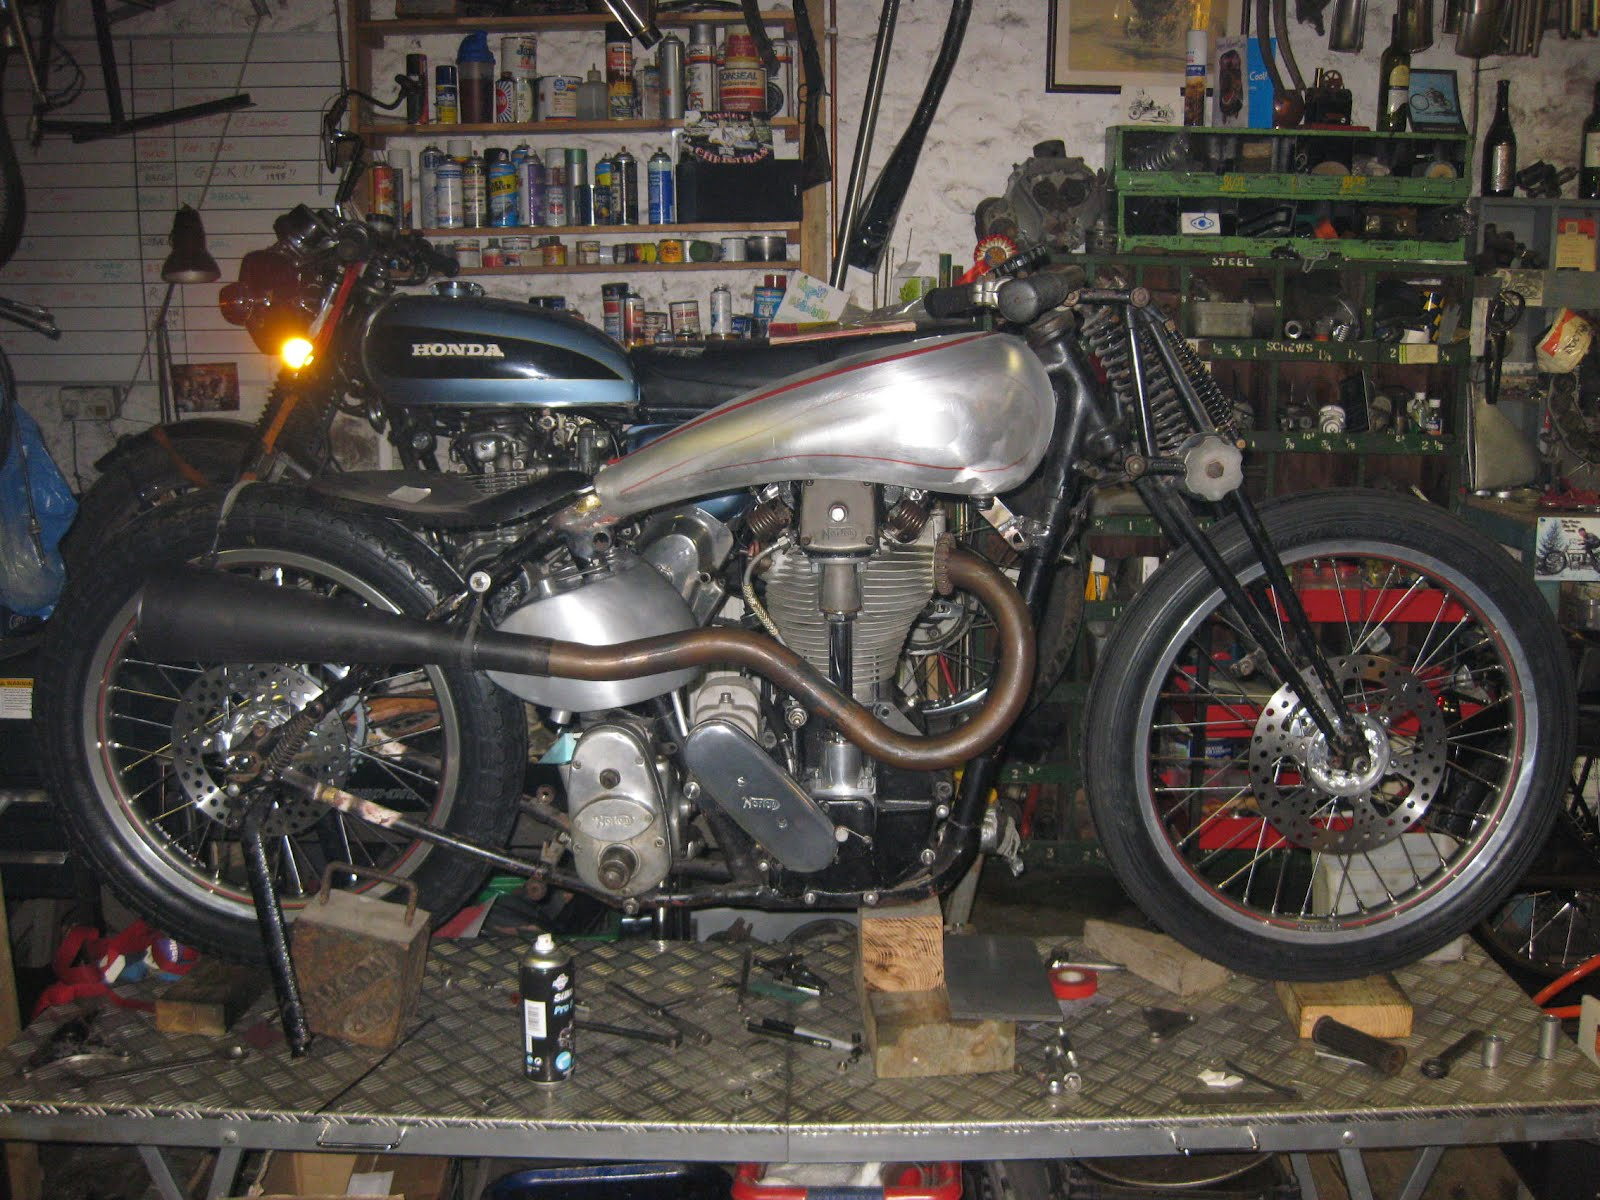 southsiders: Norton and Honda 4 cylinders motorcycle engines